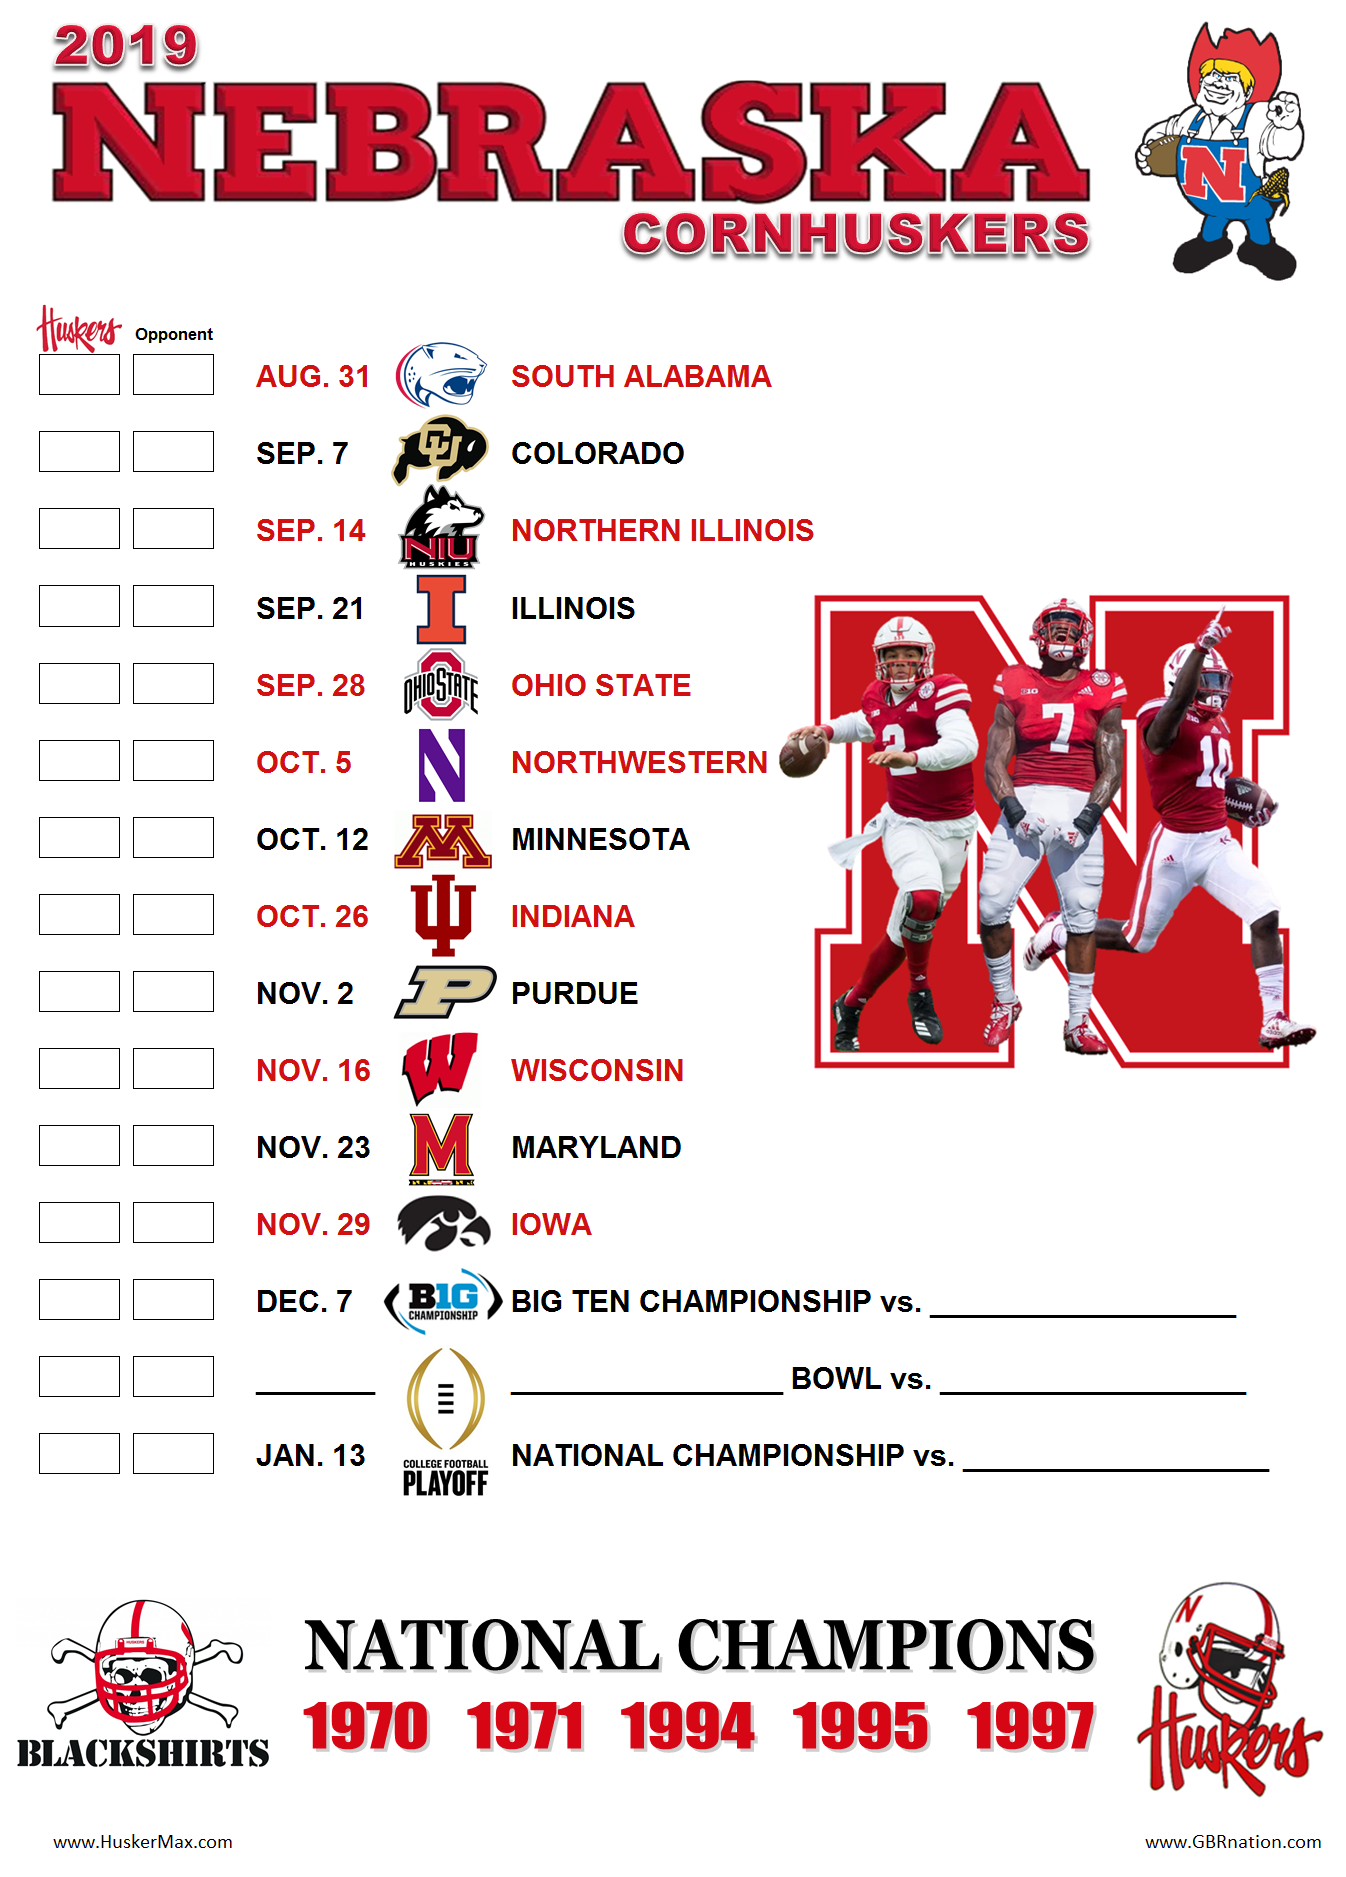 graphic about Ohio State Football Schedule Printable named Printable 2019 Nebraska soccer timetable August 19, 2019